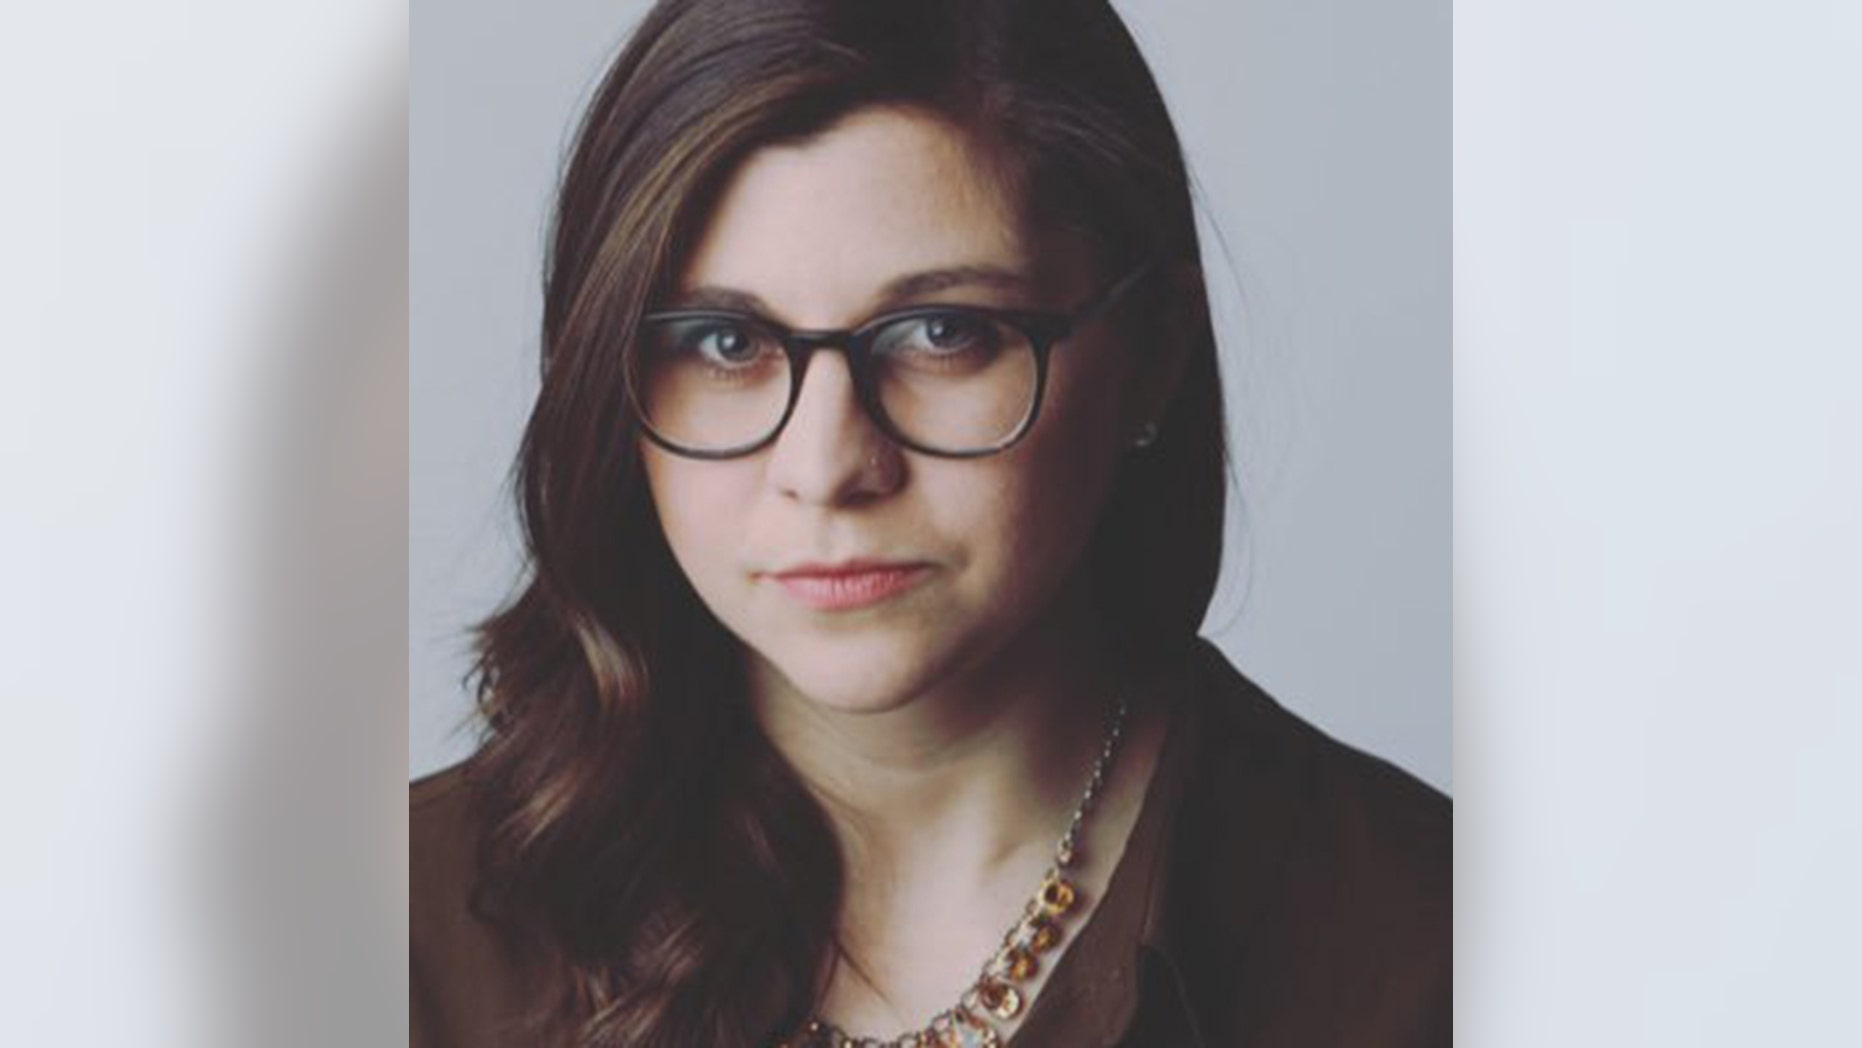 The New York Times reported law enforcement officials seized reporter Ali Watkins' phone and email records.